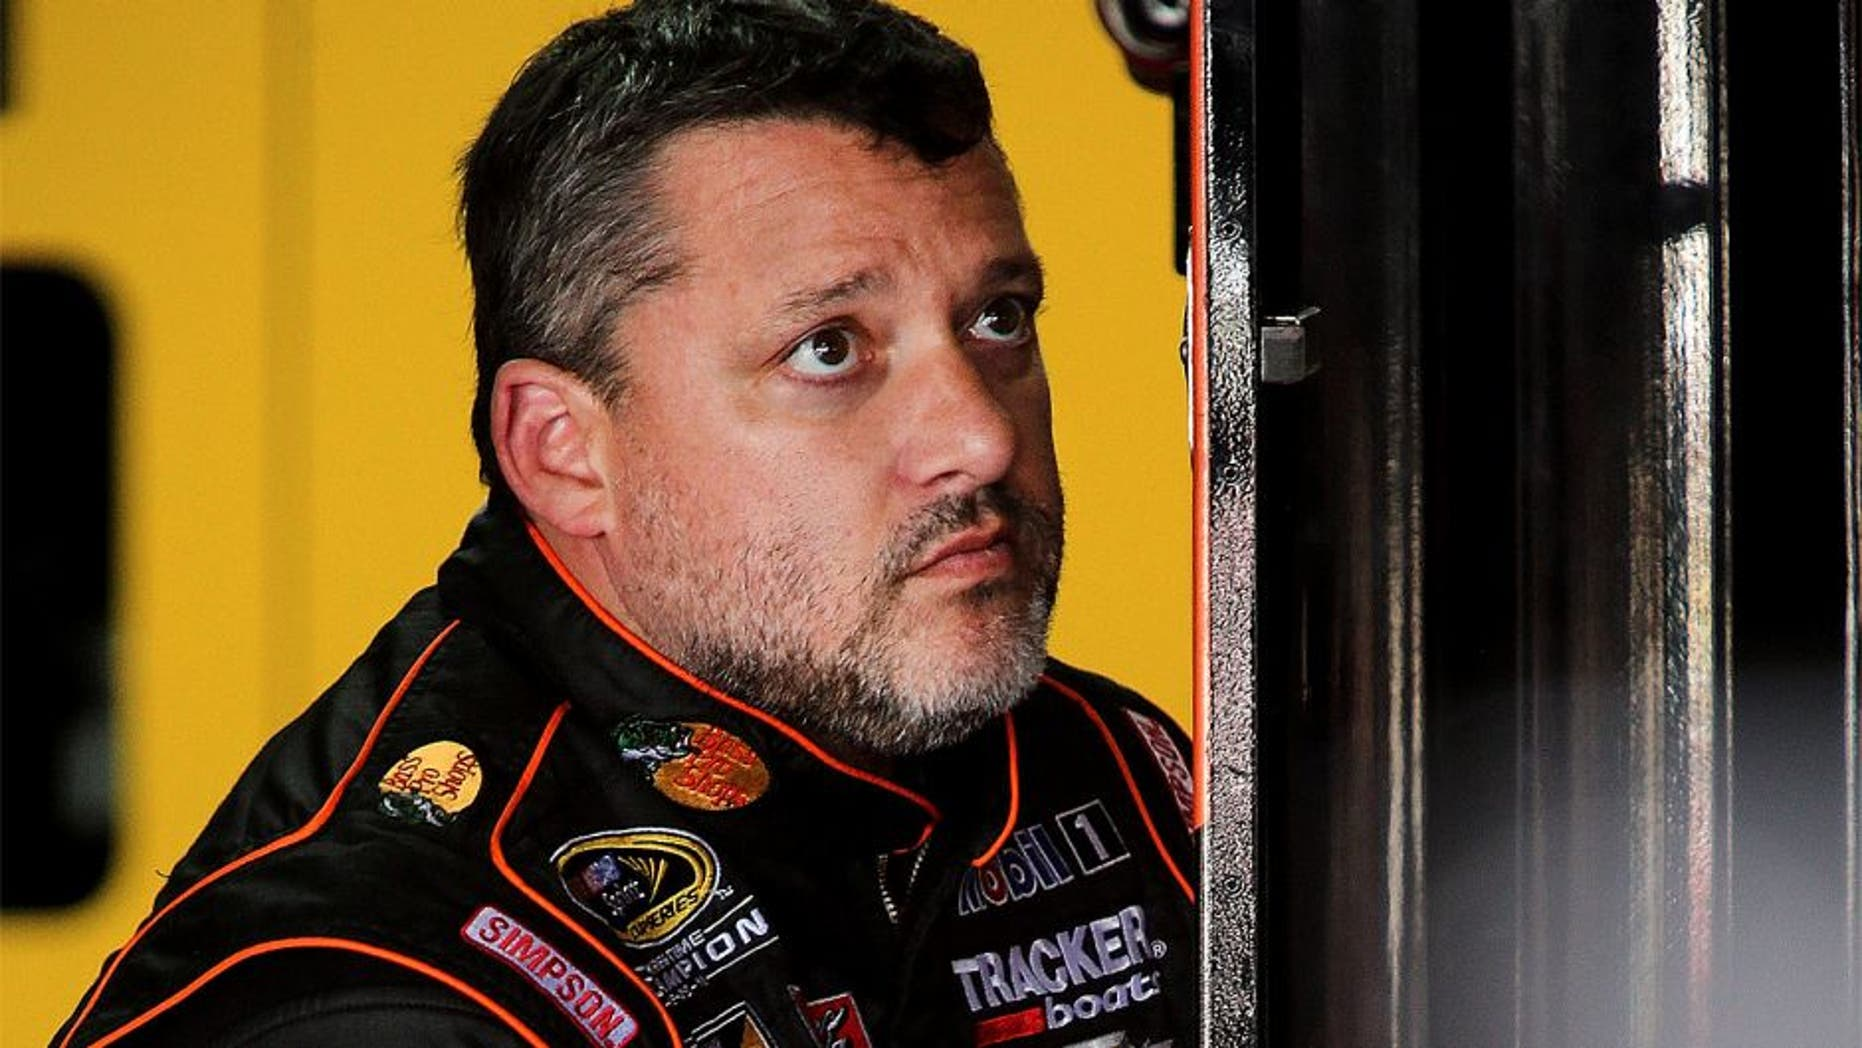 CHARLOTTE, NC - OCTOBER 08: Tony Stewart, driver of the #14 Bass Pro Shops/Mobil 1 Chevrolet, stis in the garage during practice for the NASCAR Sprint Cup Series Bank of America 500 at Charlotte Motor Speedway on October 8, 2015 in Charlotte, North Carolina. (Photo by Jerry Markland/Getty Images)